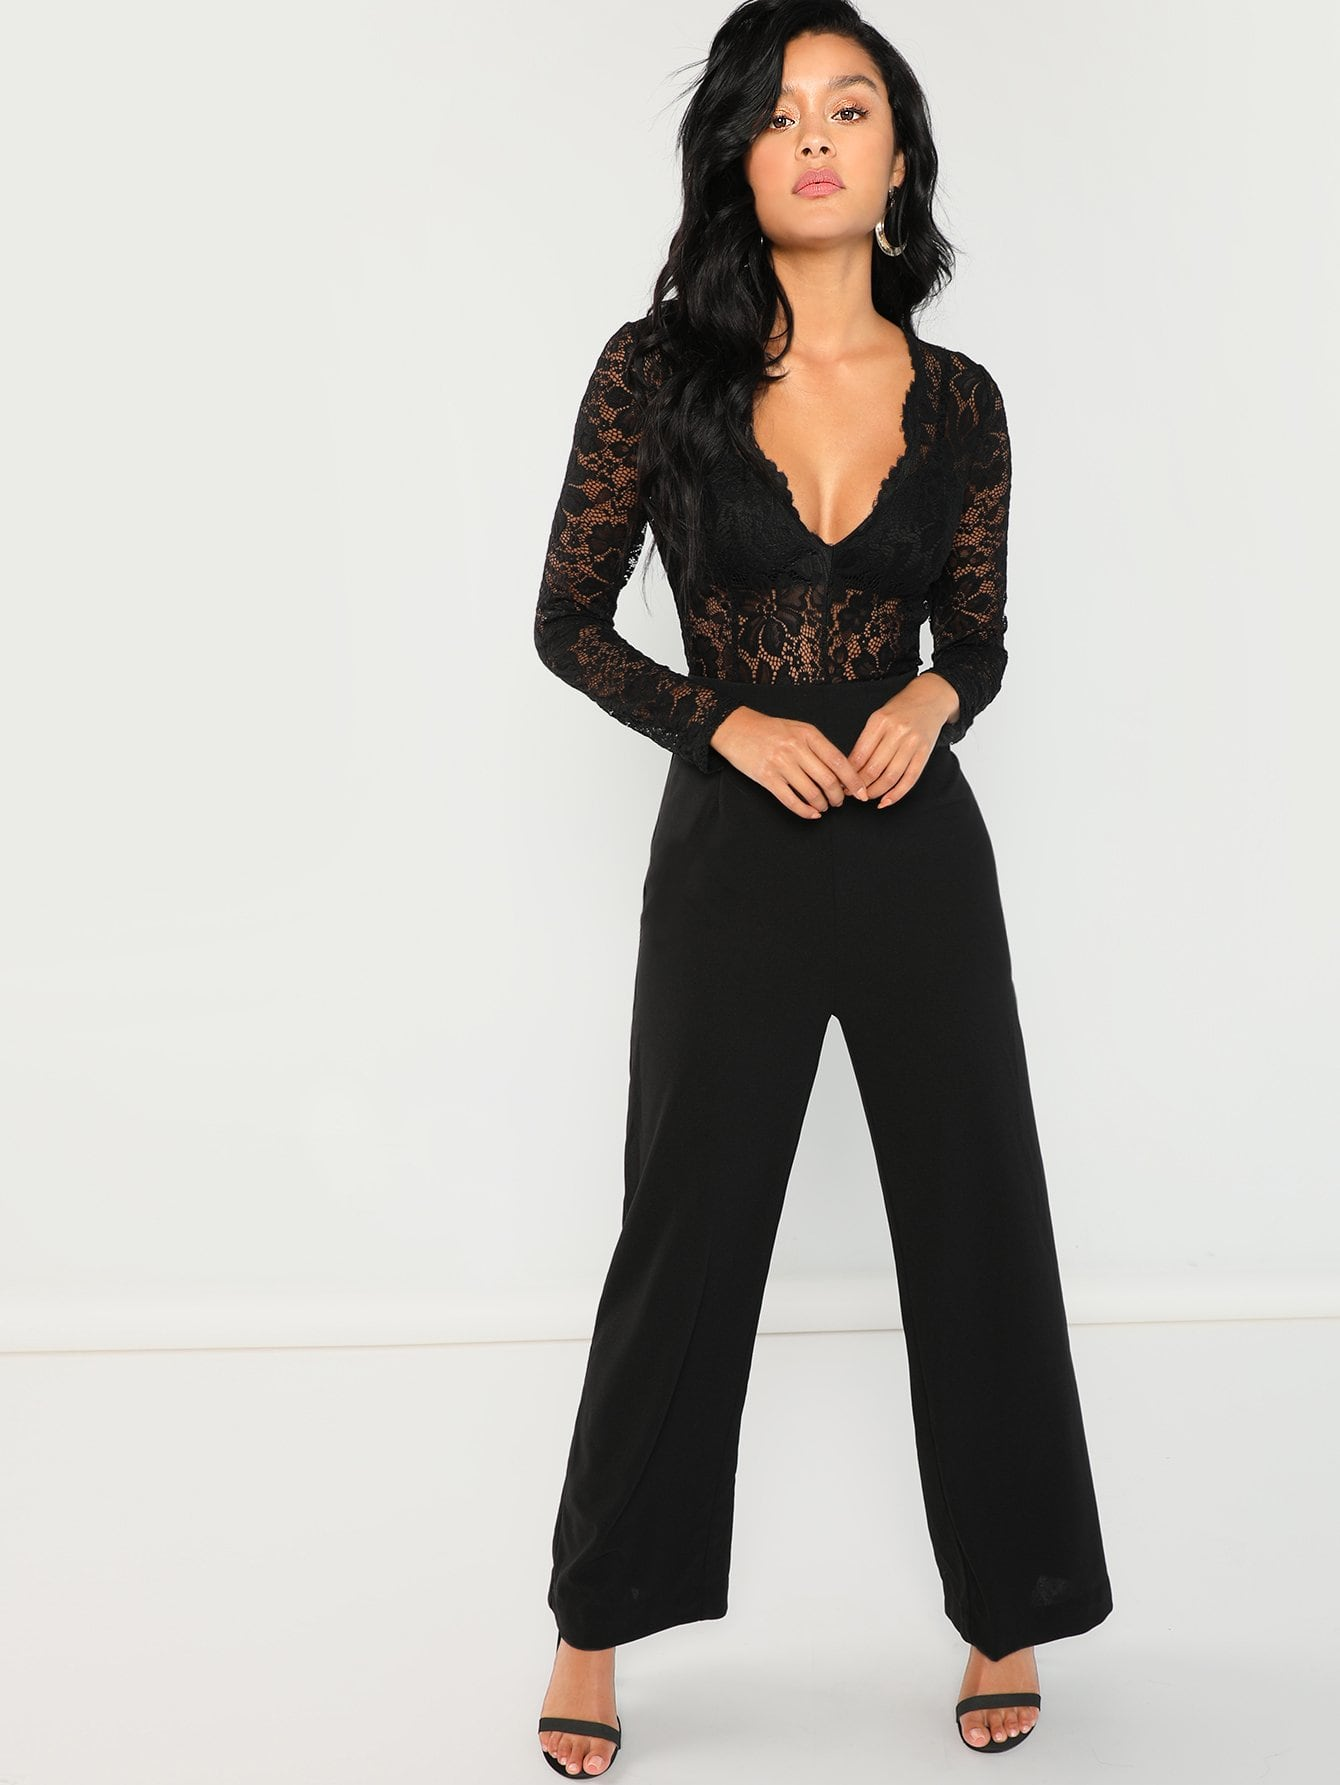 Plunging Lace Bodice Jumpsuit-Sunshine's Boutique & Gifts